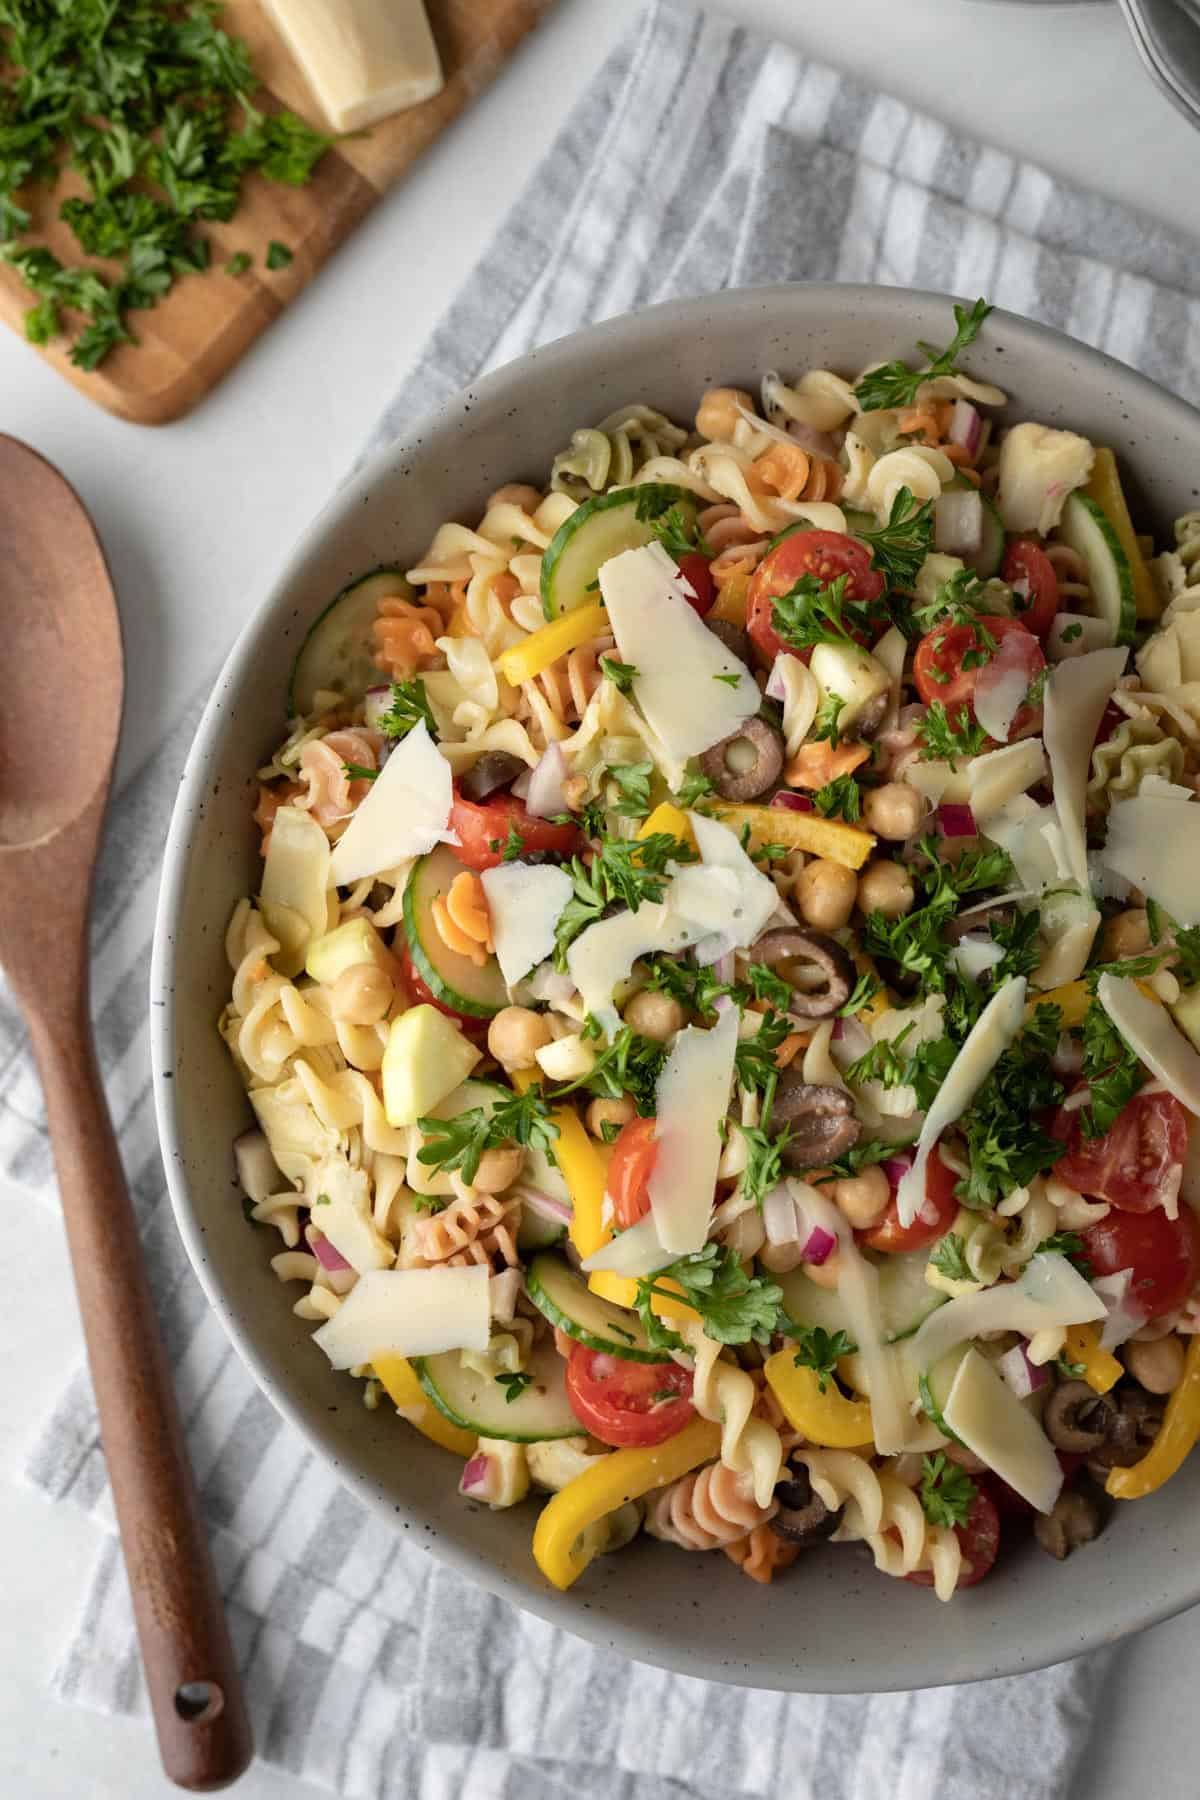 large serving bowl full of oil-free pasta salad dressed with this no oil aquafaba vinaigrette.